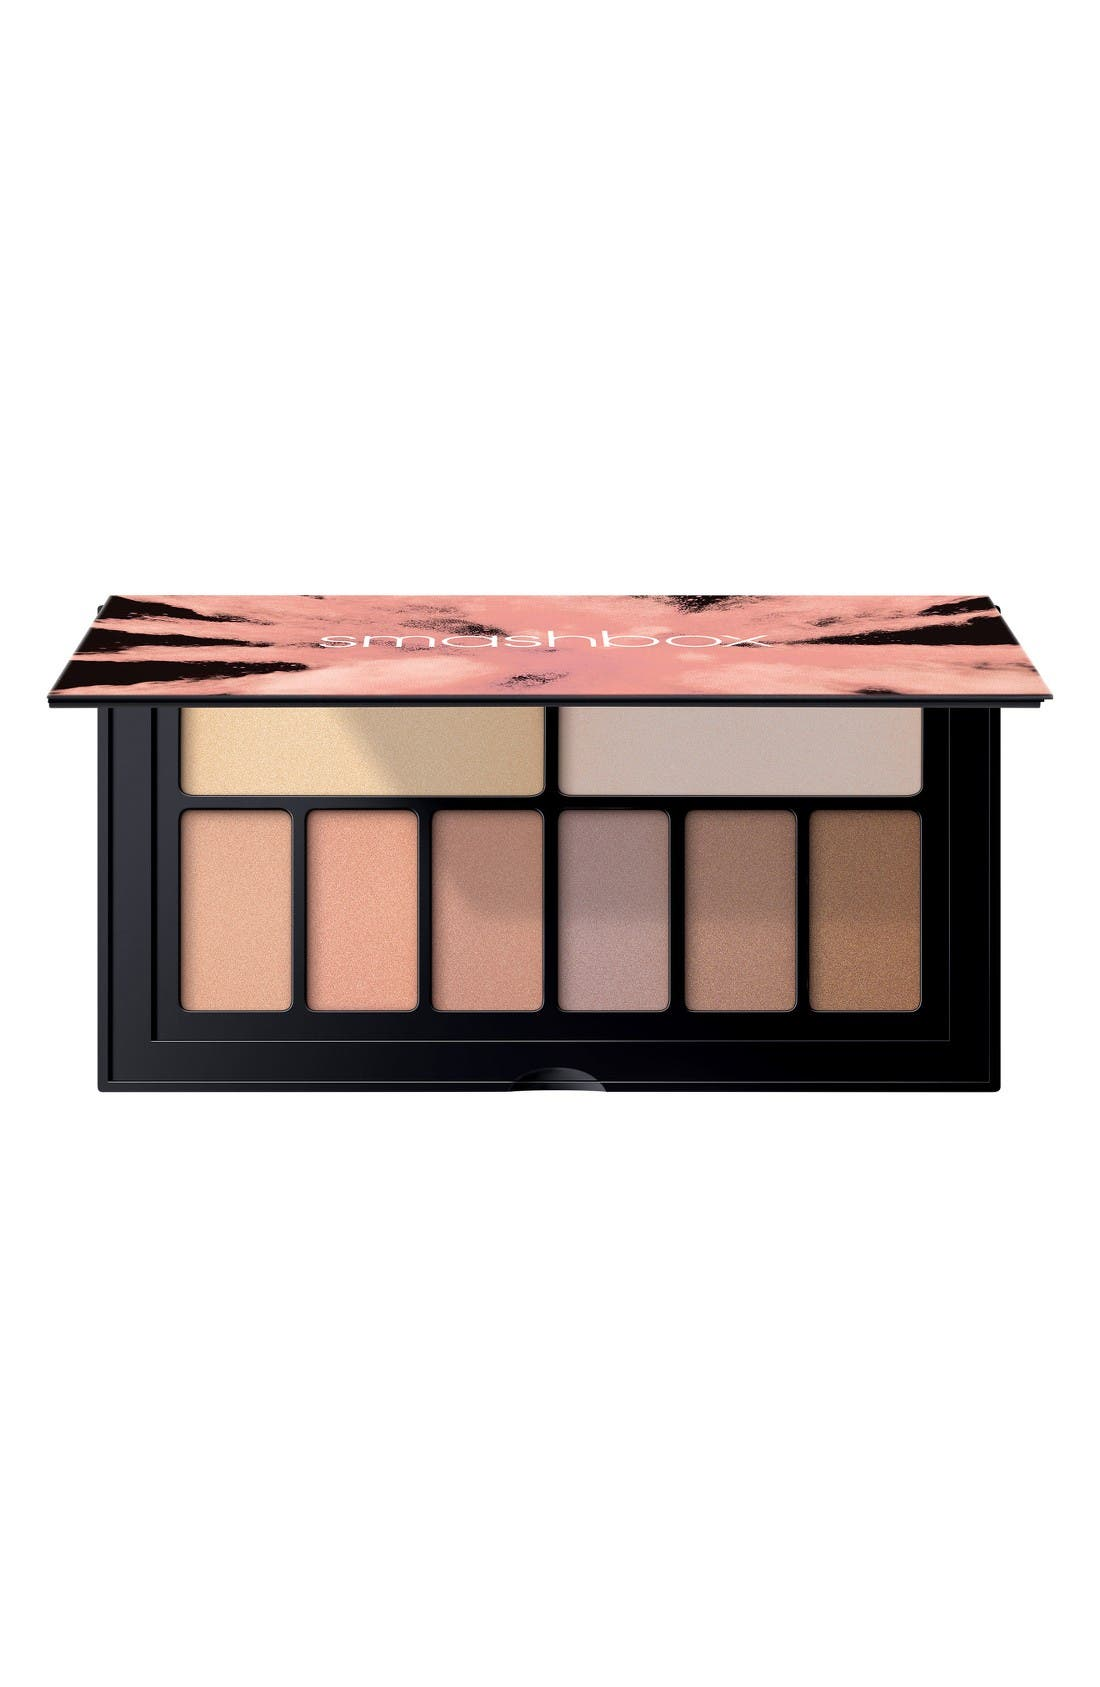 Main Image - Smashbox Cover Shot Softlight Eyeshadow Palette